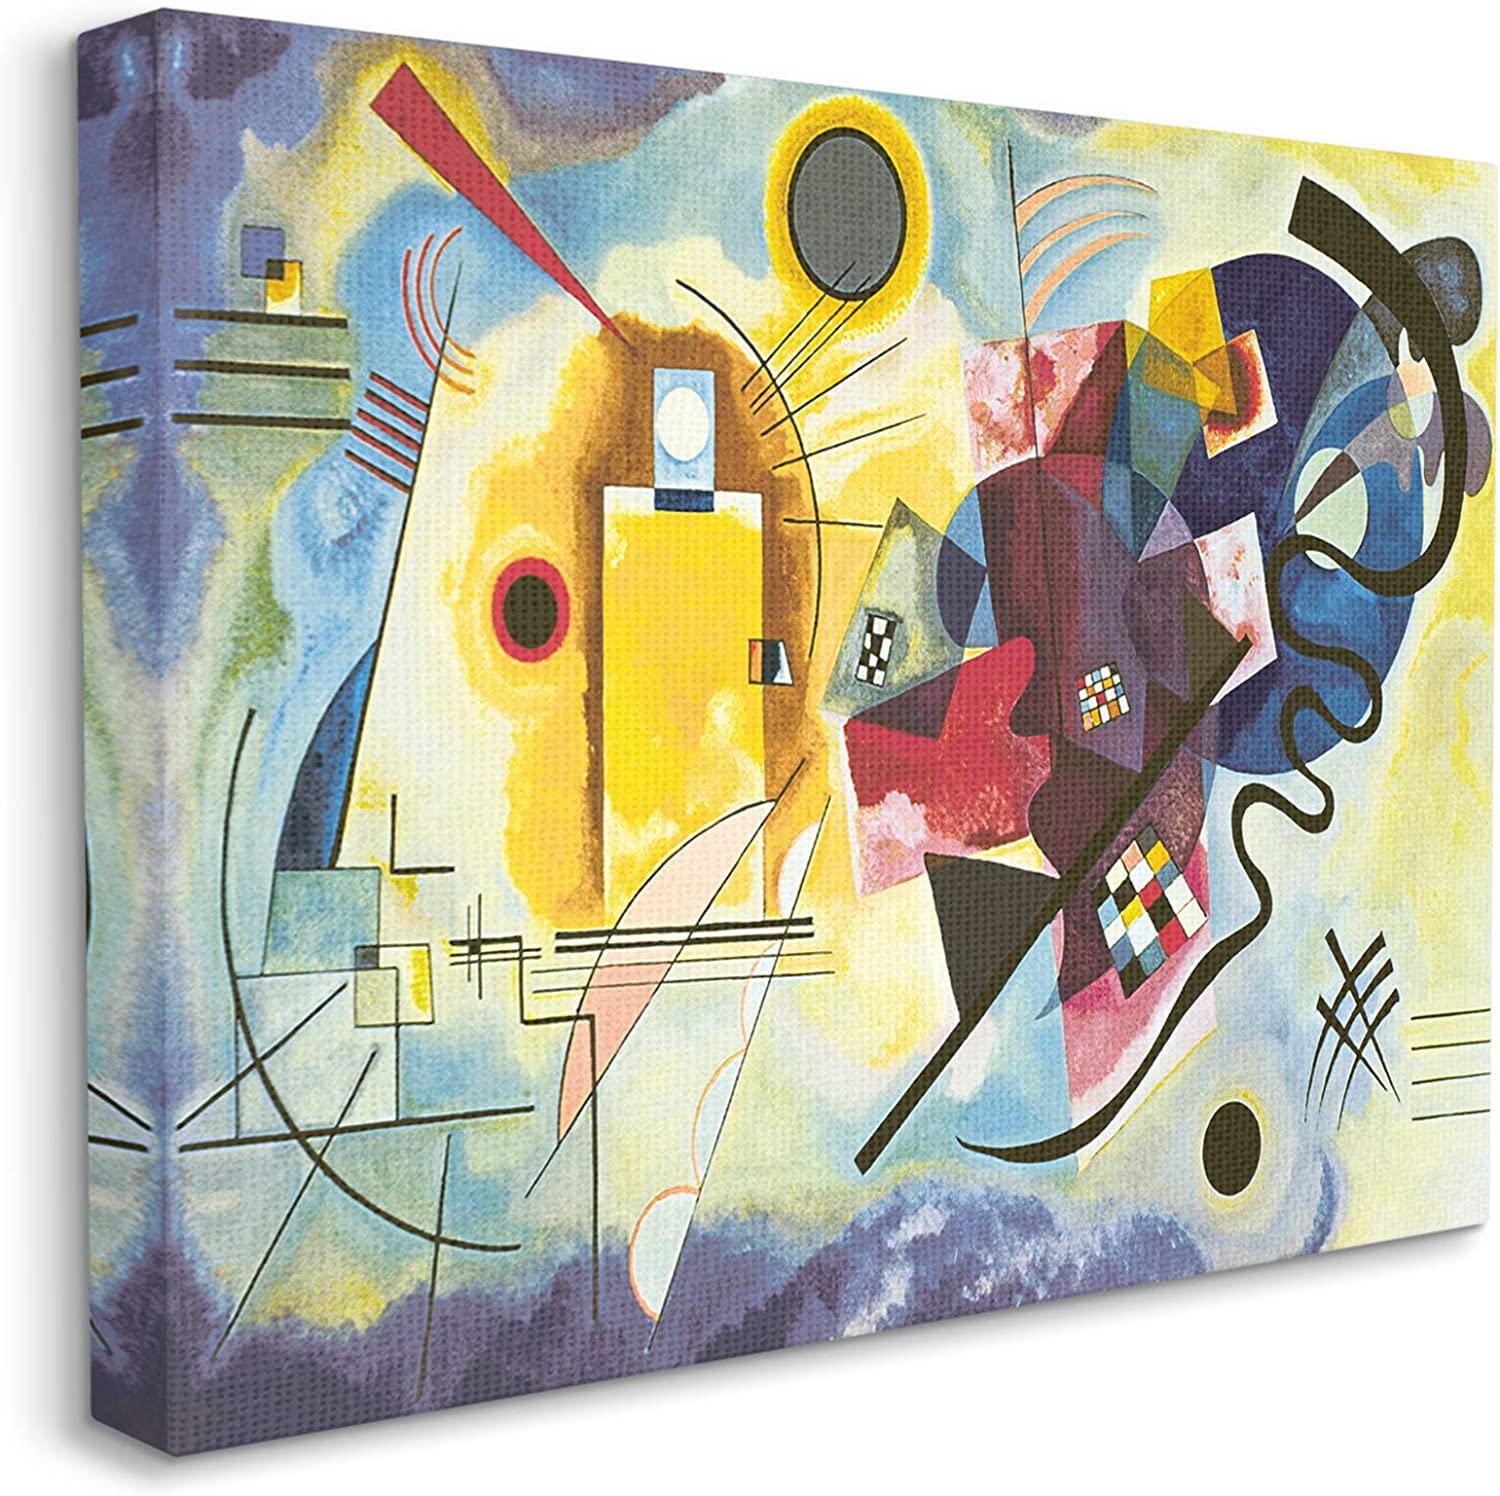 Stupell Industries Classic Abstraction Yellow 特売 新品 送料無料 b Blue Red Design